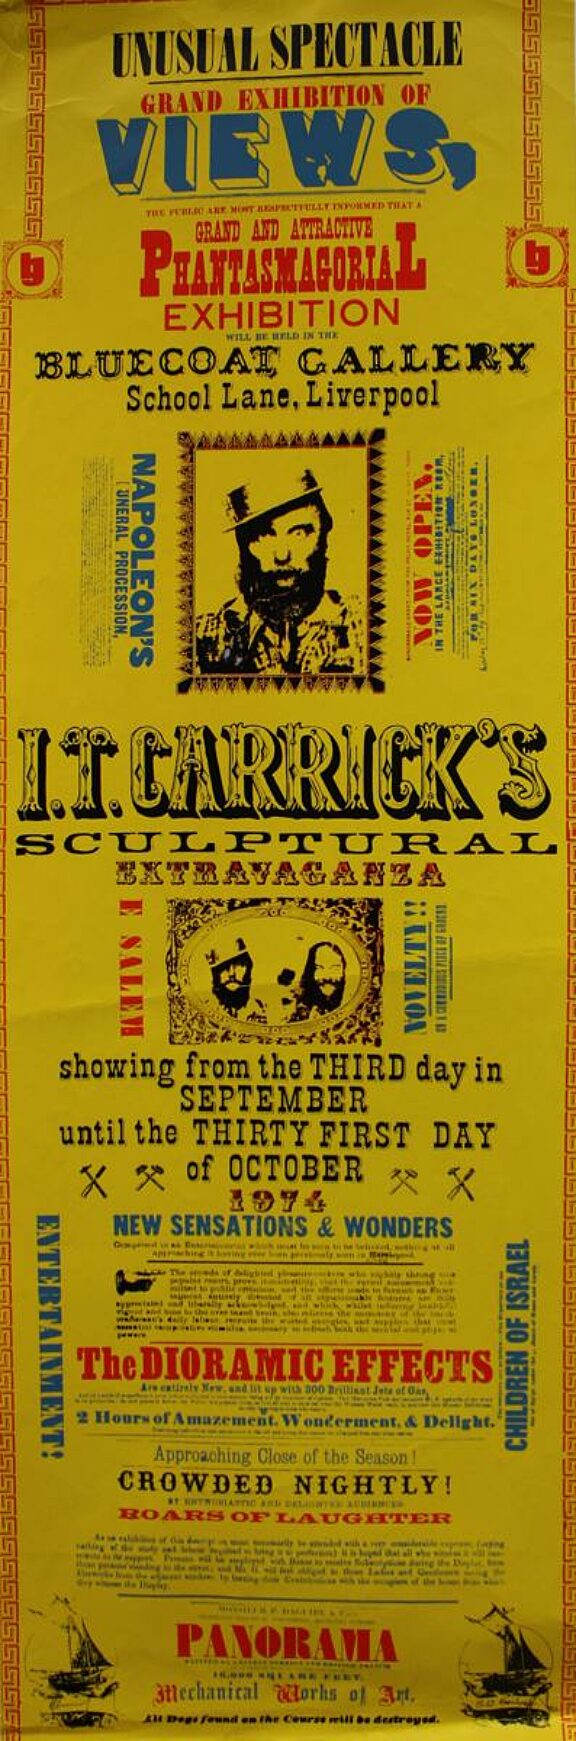 Poster for Ian Carrick's Scuptural Extravaganza exhibition